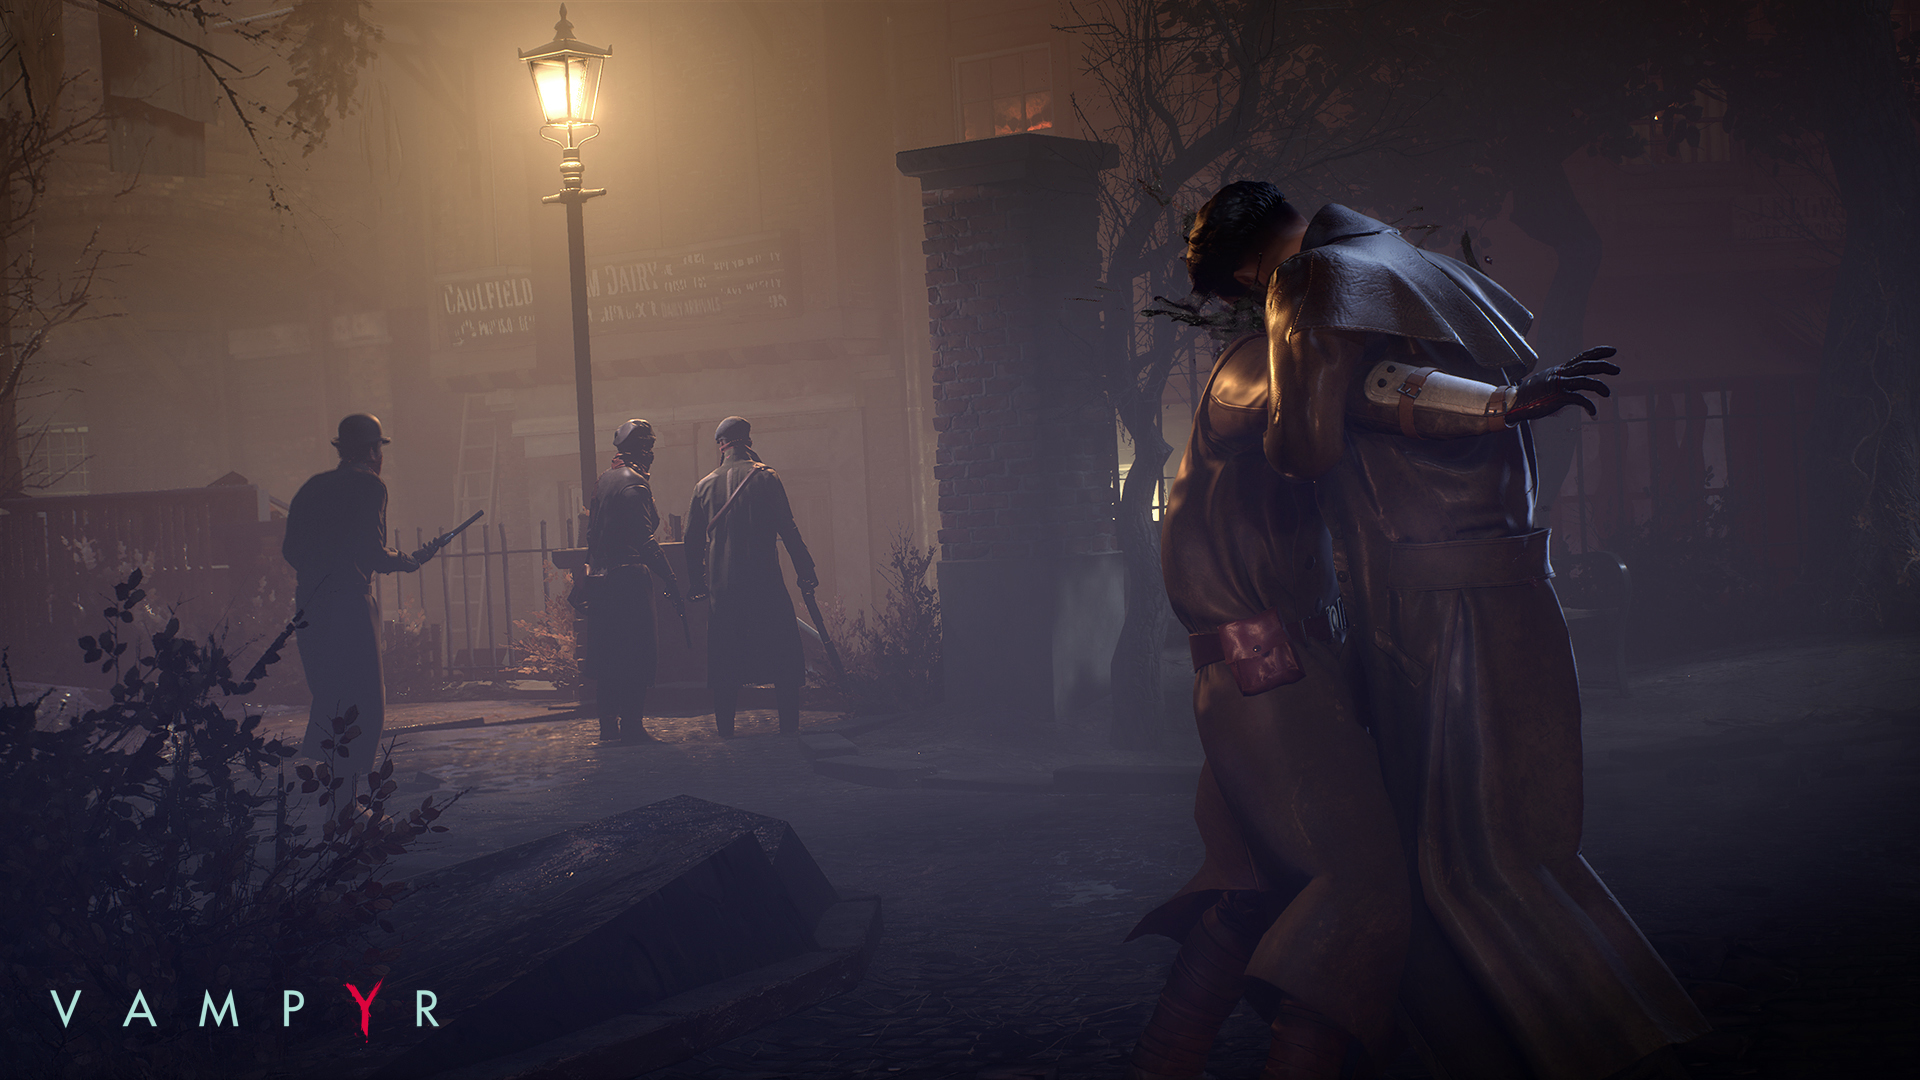 Vampyr's E3 Trailer Gives Us a Better Look at the Game